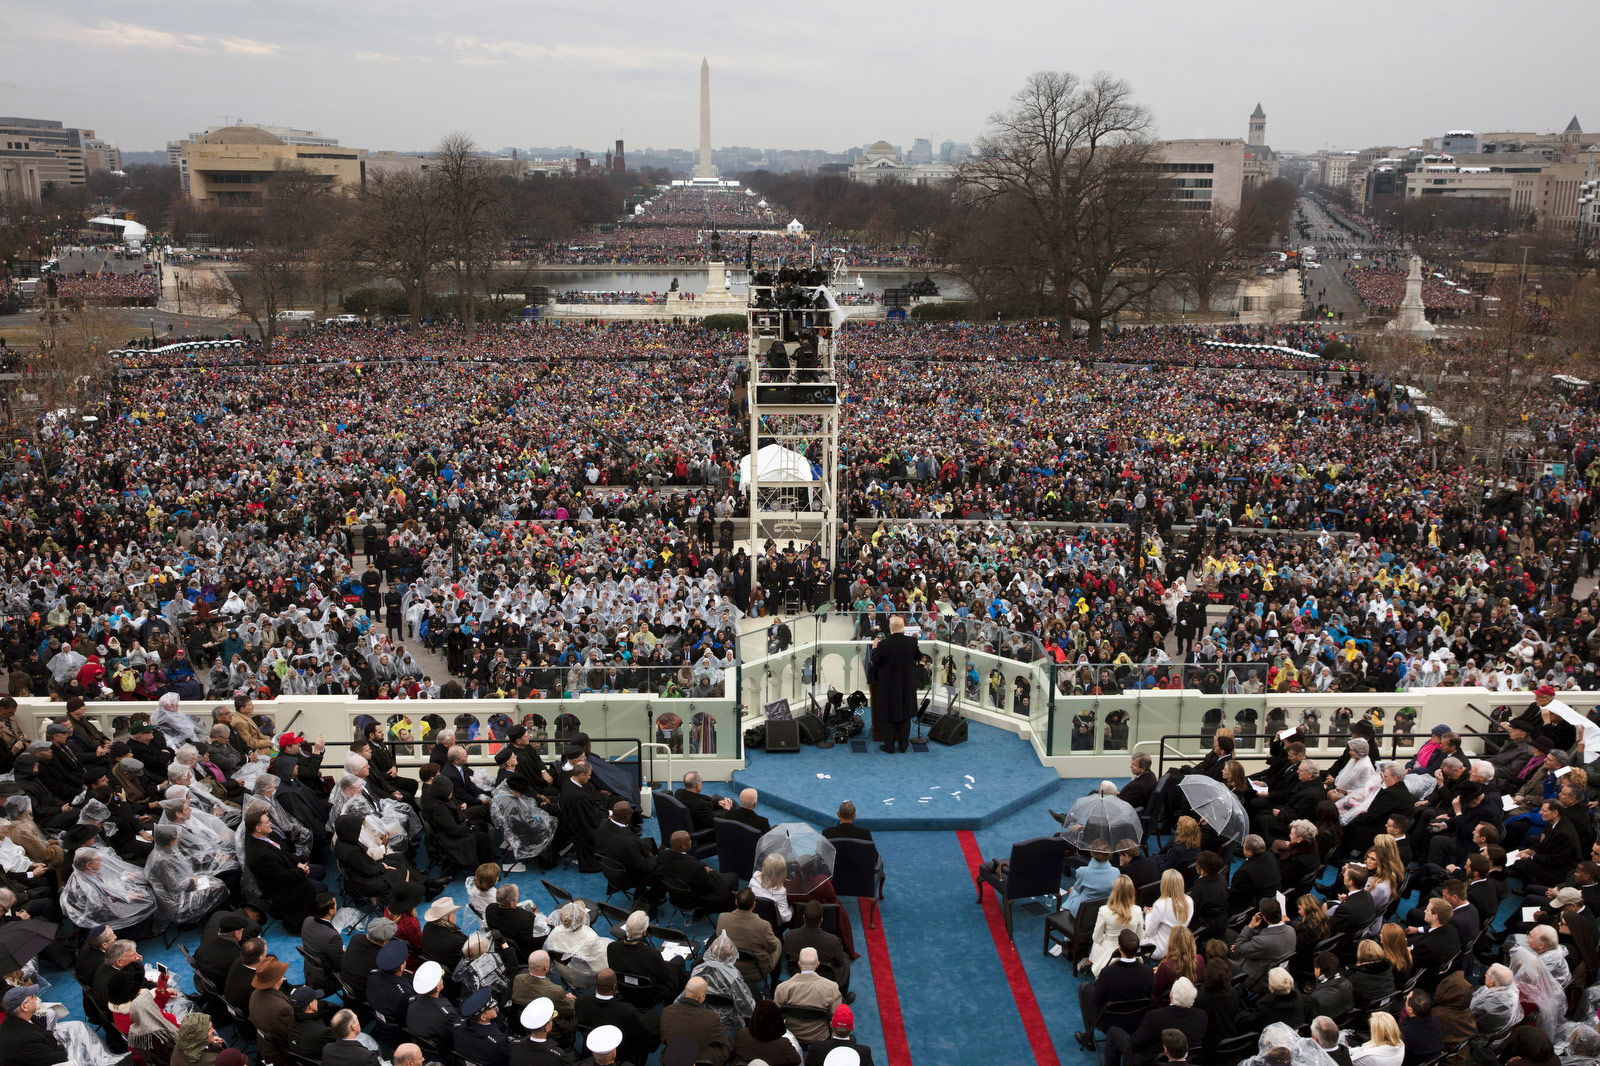 11 - What we won't see at this year's inauguration